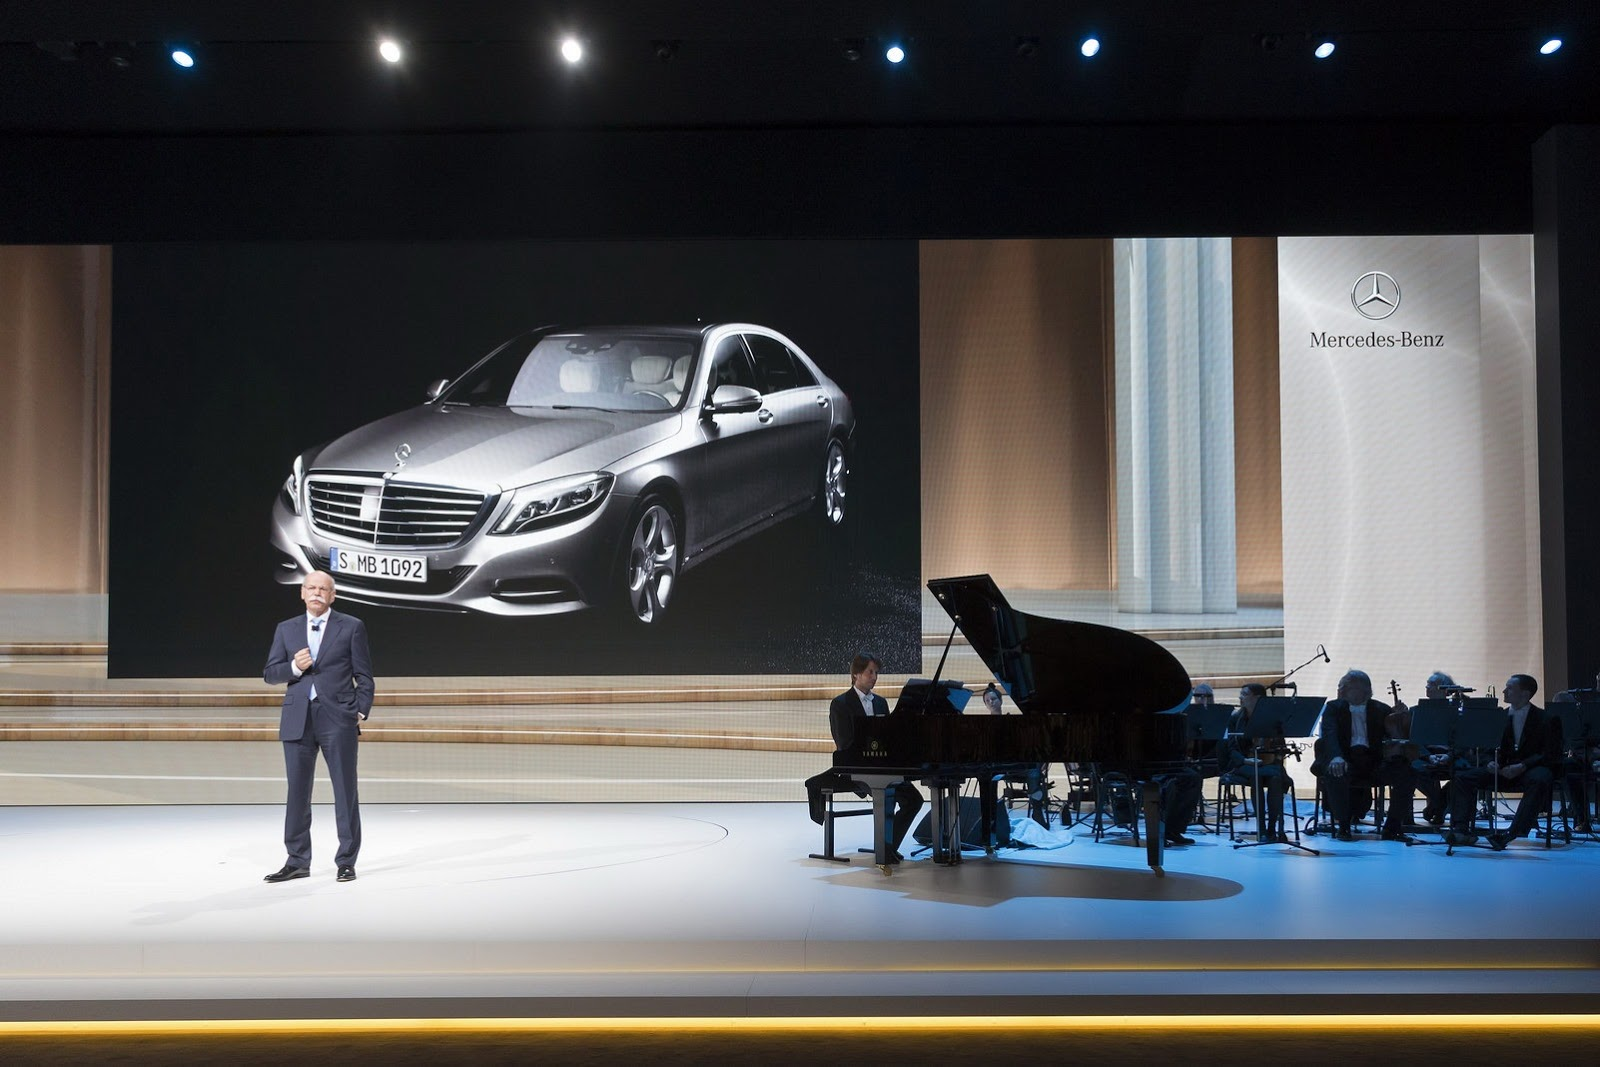 2014 Mercedes Benz S-Class Reveal Event - SMADE MEDIA (4)